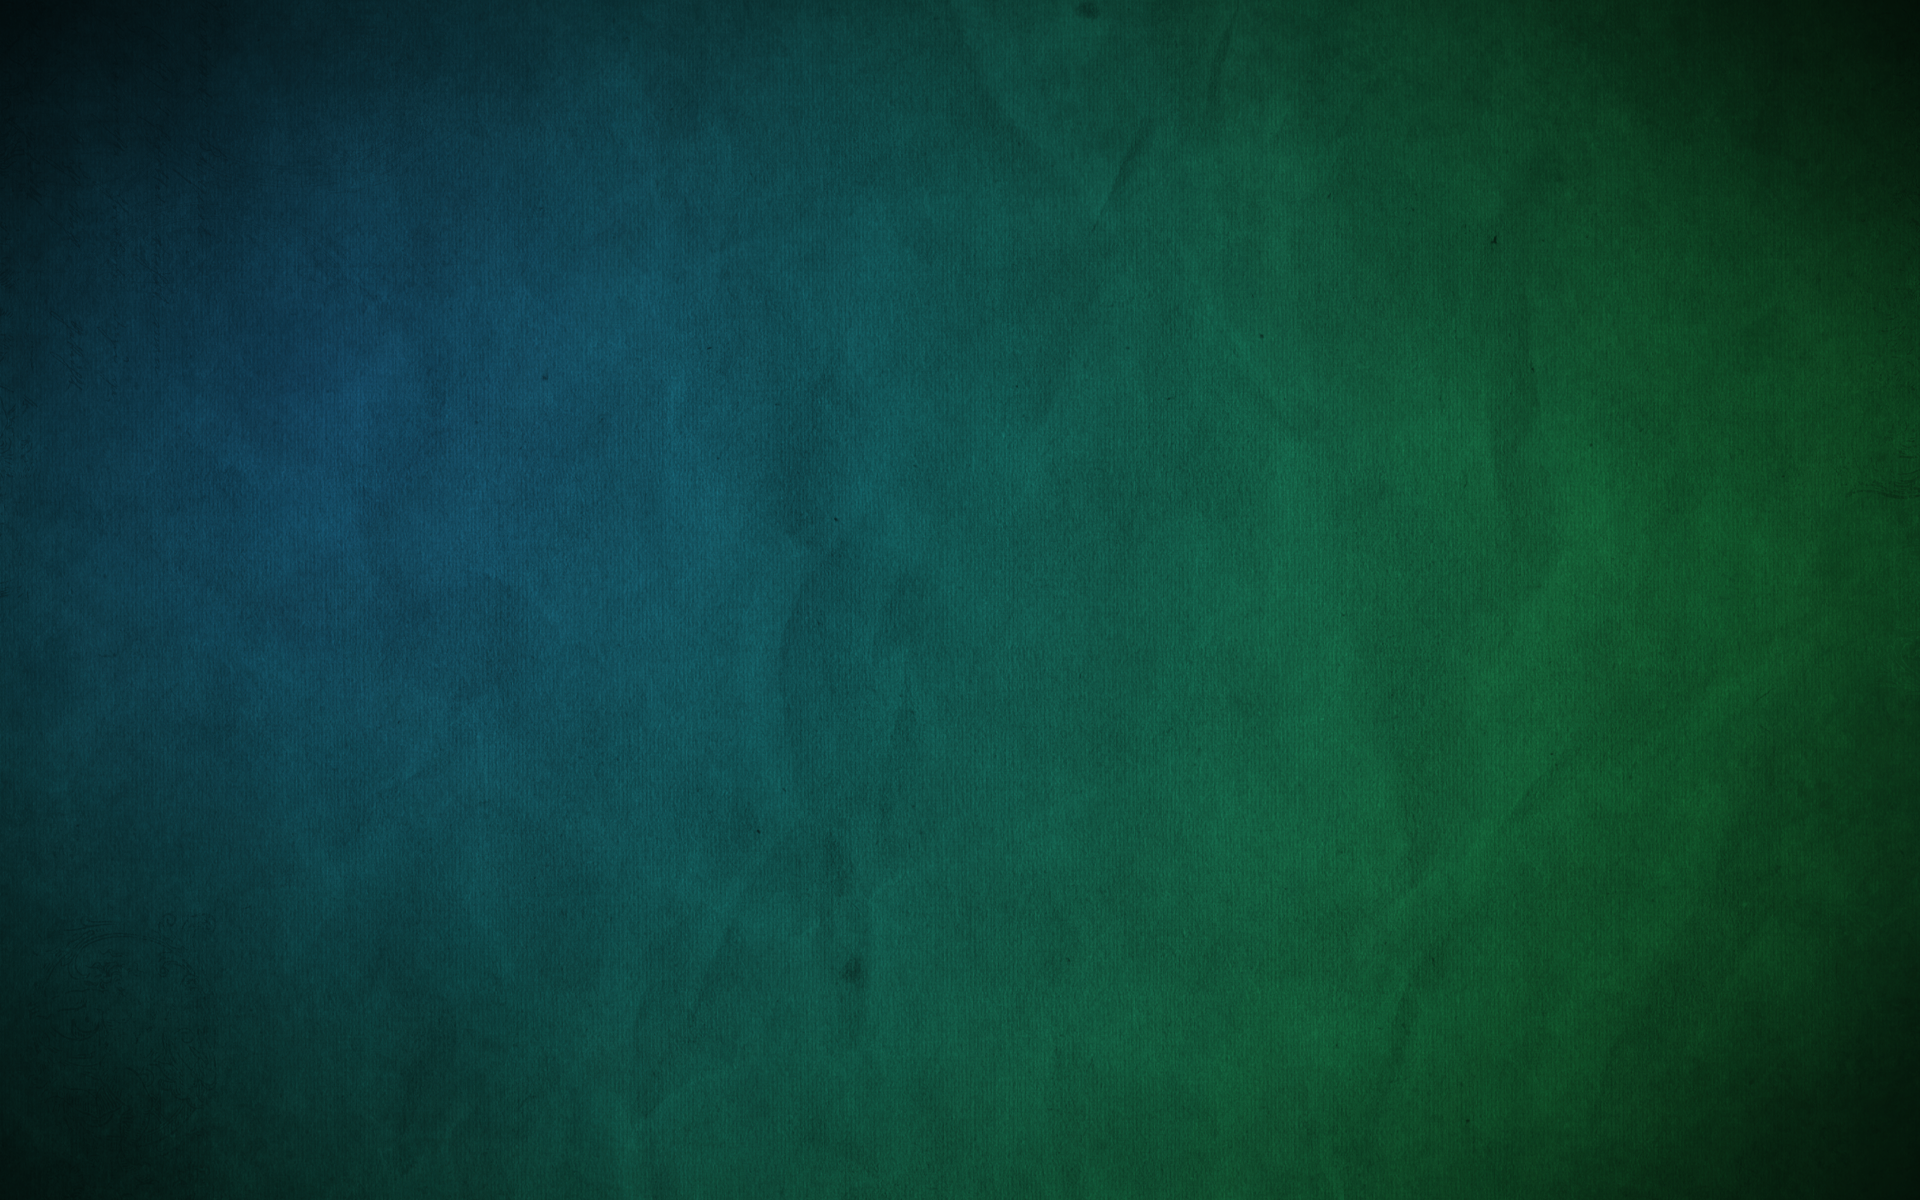 Green Background in Abstract   Wugange Backgrounds For Panels 1920x1200